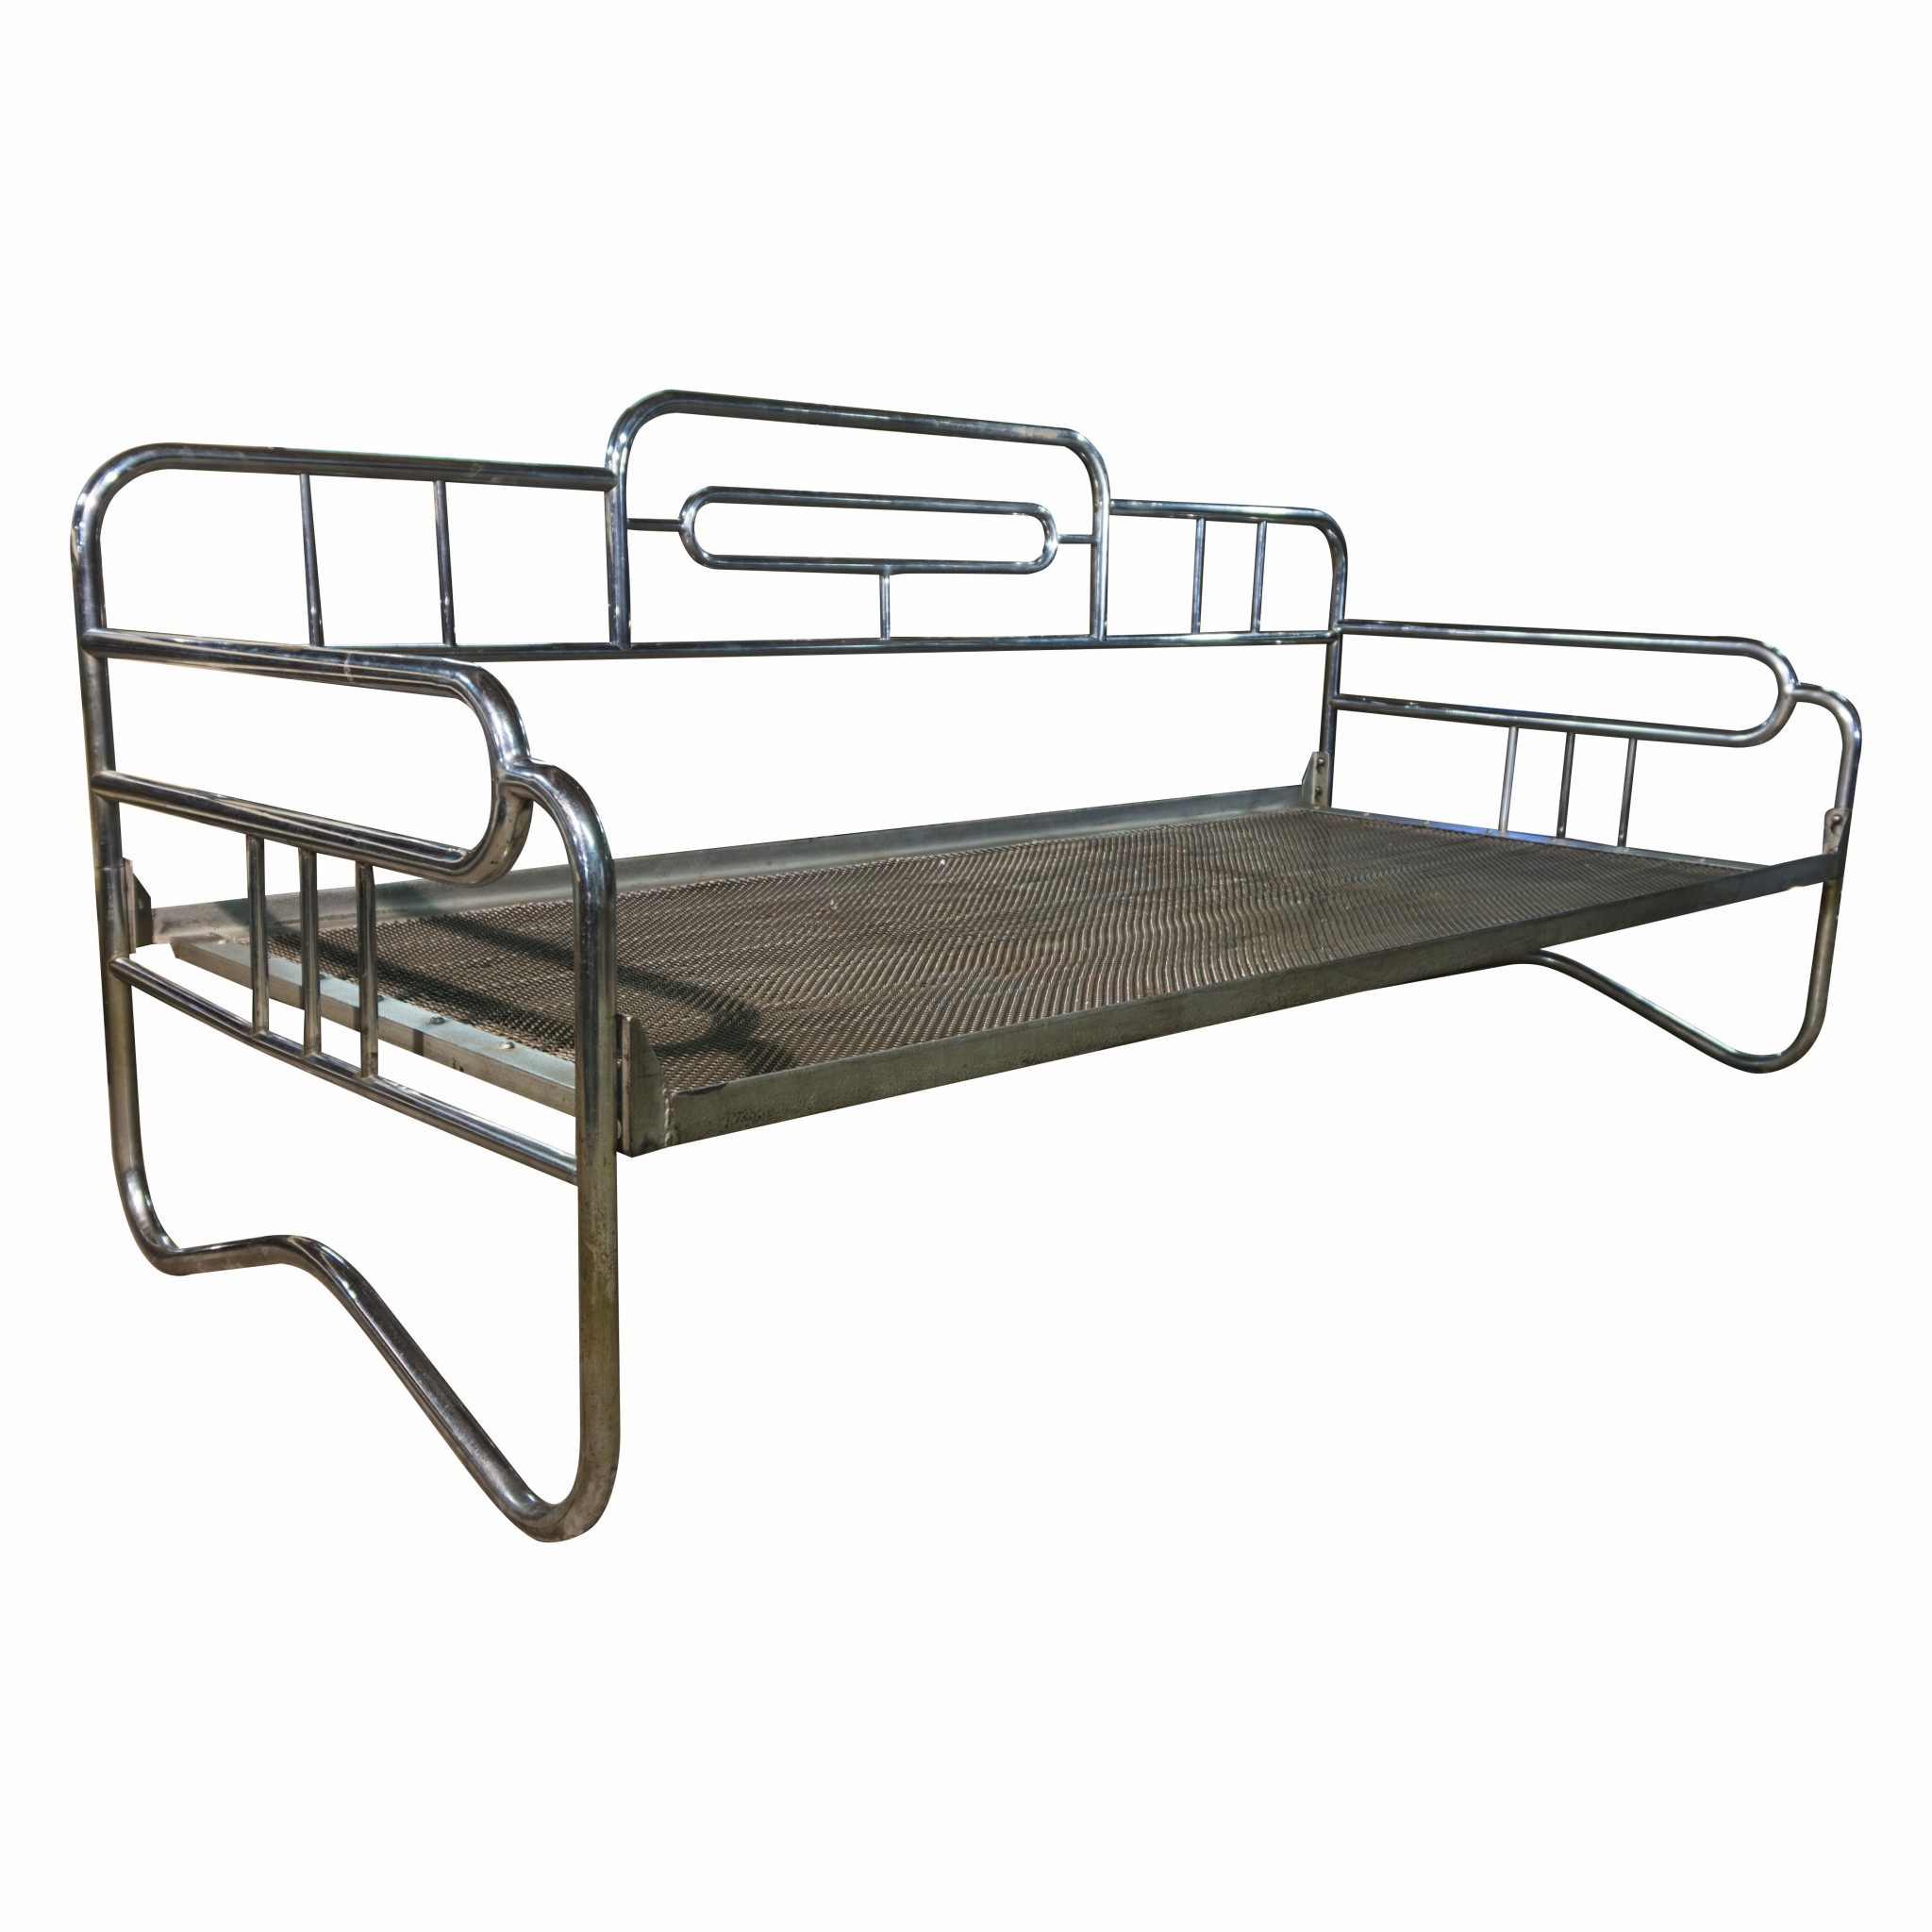 Exceptional chromed Bauhaus sofa 1930´s probably Hynek Gottwald